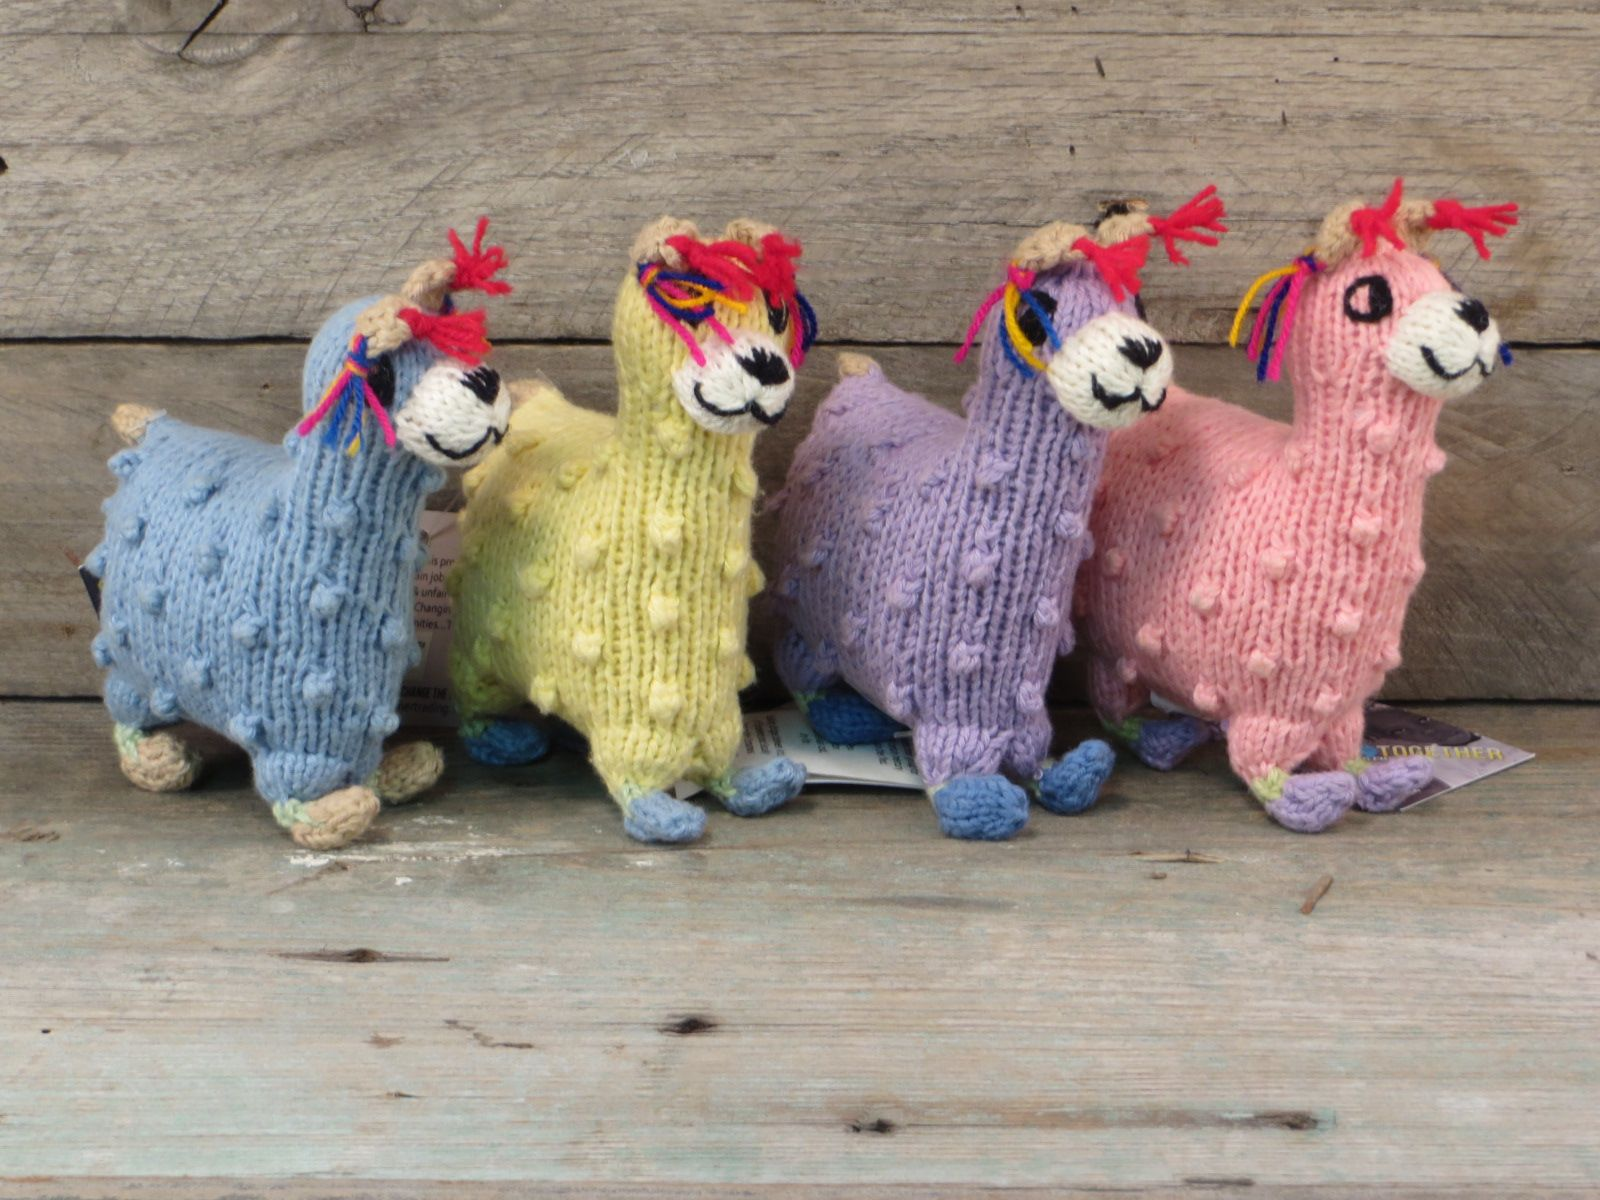 Hand Knitted Stuffed Baby Llama 11 00 Handmade With Love